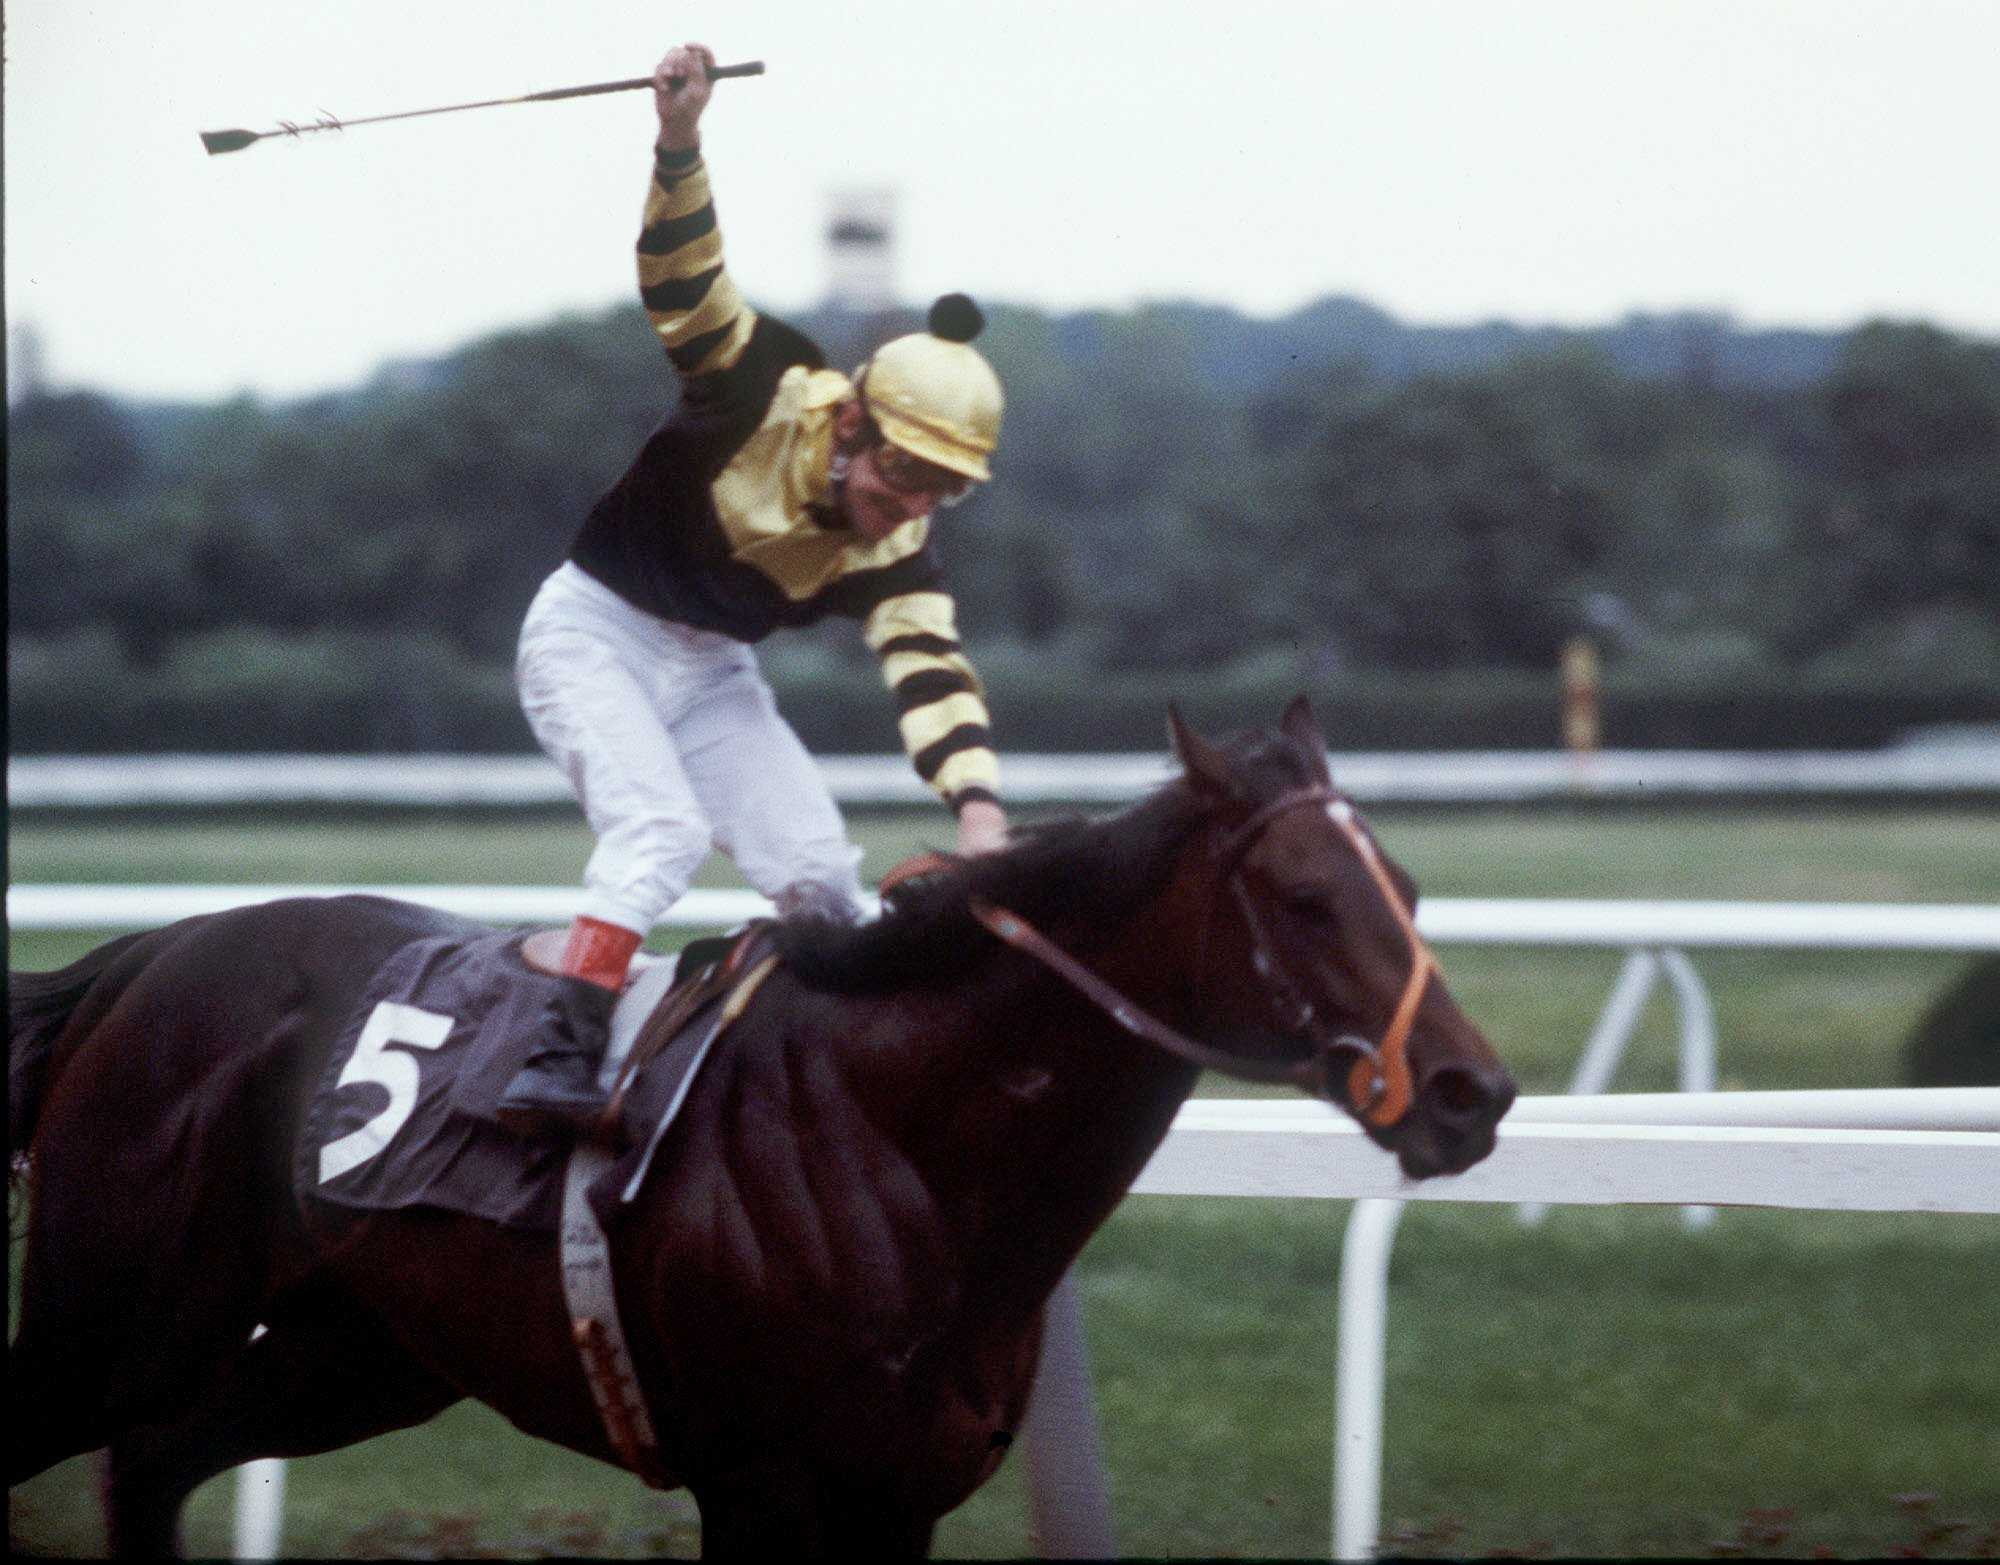 Jockey Jean Cruget stands up in his saddle and celebrates after guiding Seattle Slew to victory in the Belmont Stakes at Belmont Park in Elmont, N.Y. on June 11, 1977.